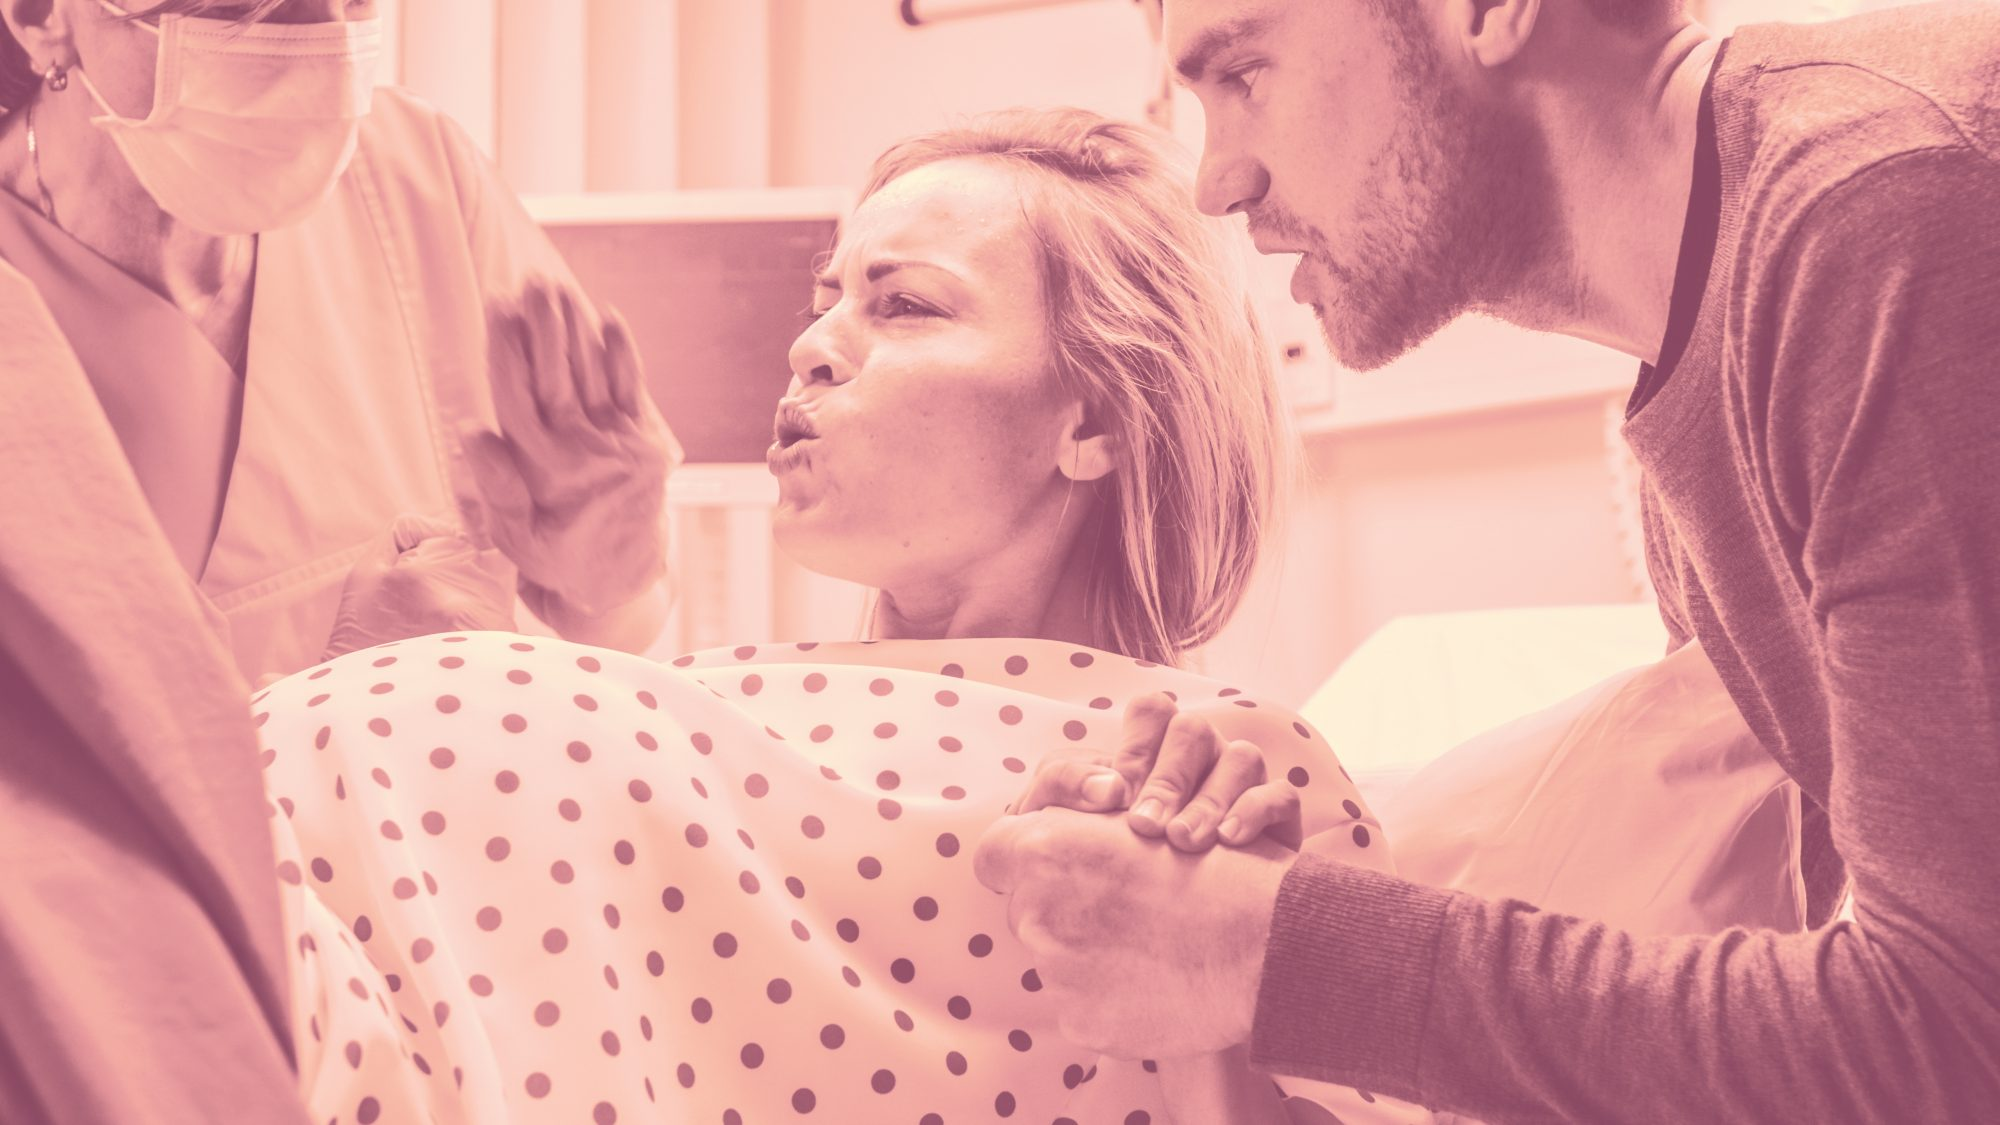 This Emotional Photo Shows a Mom Touching Her Baby's Head While Giving Birth